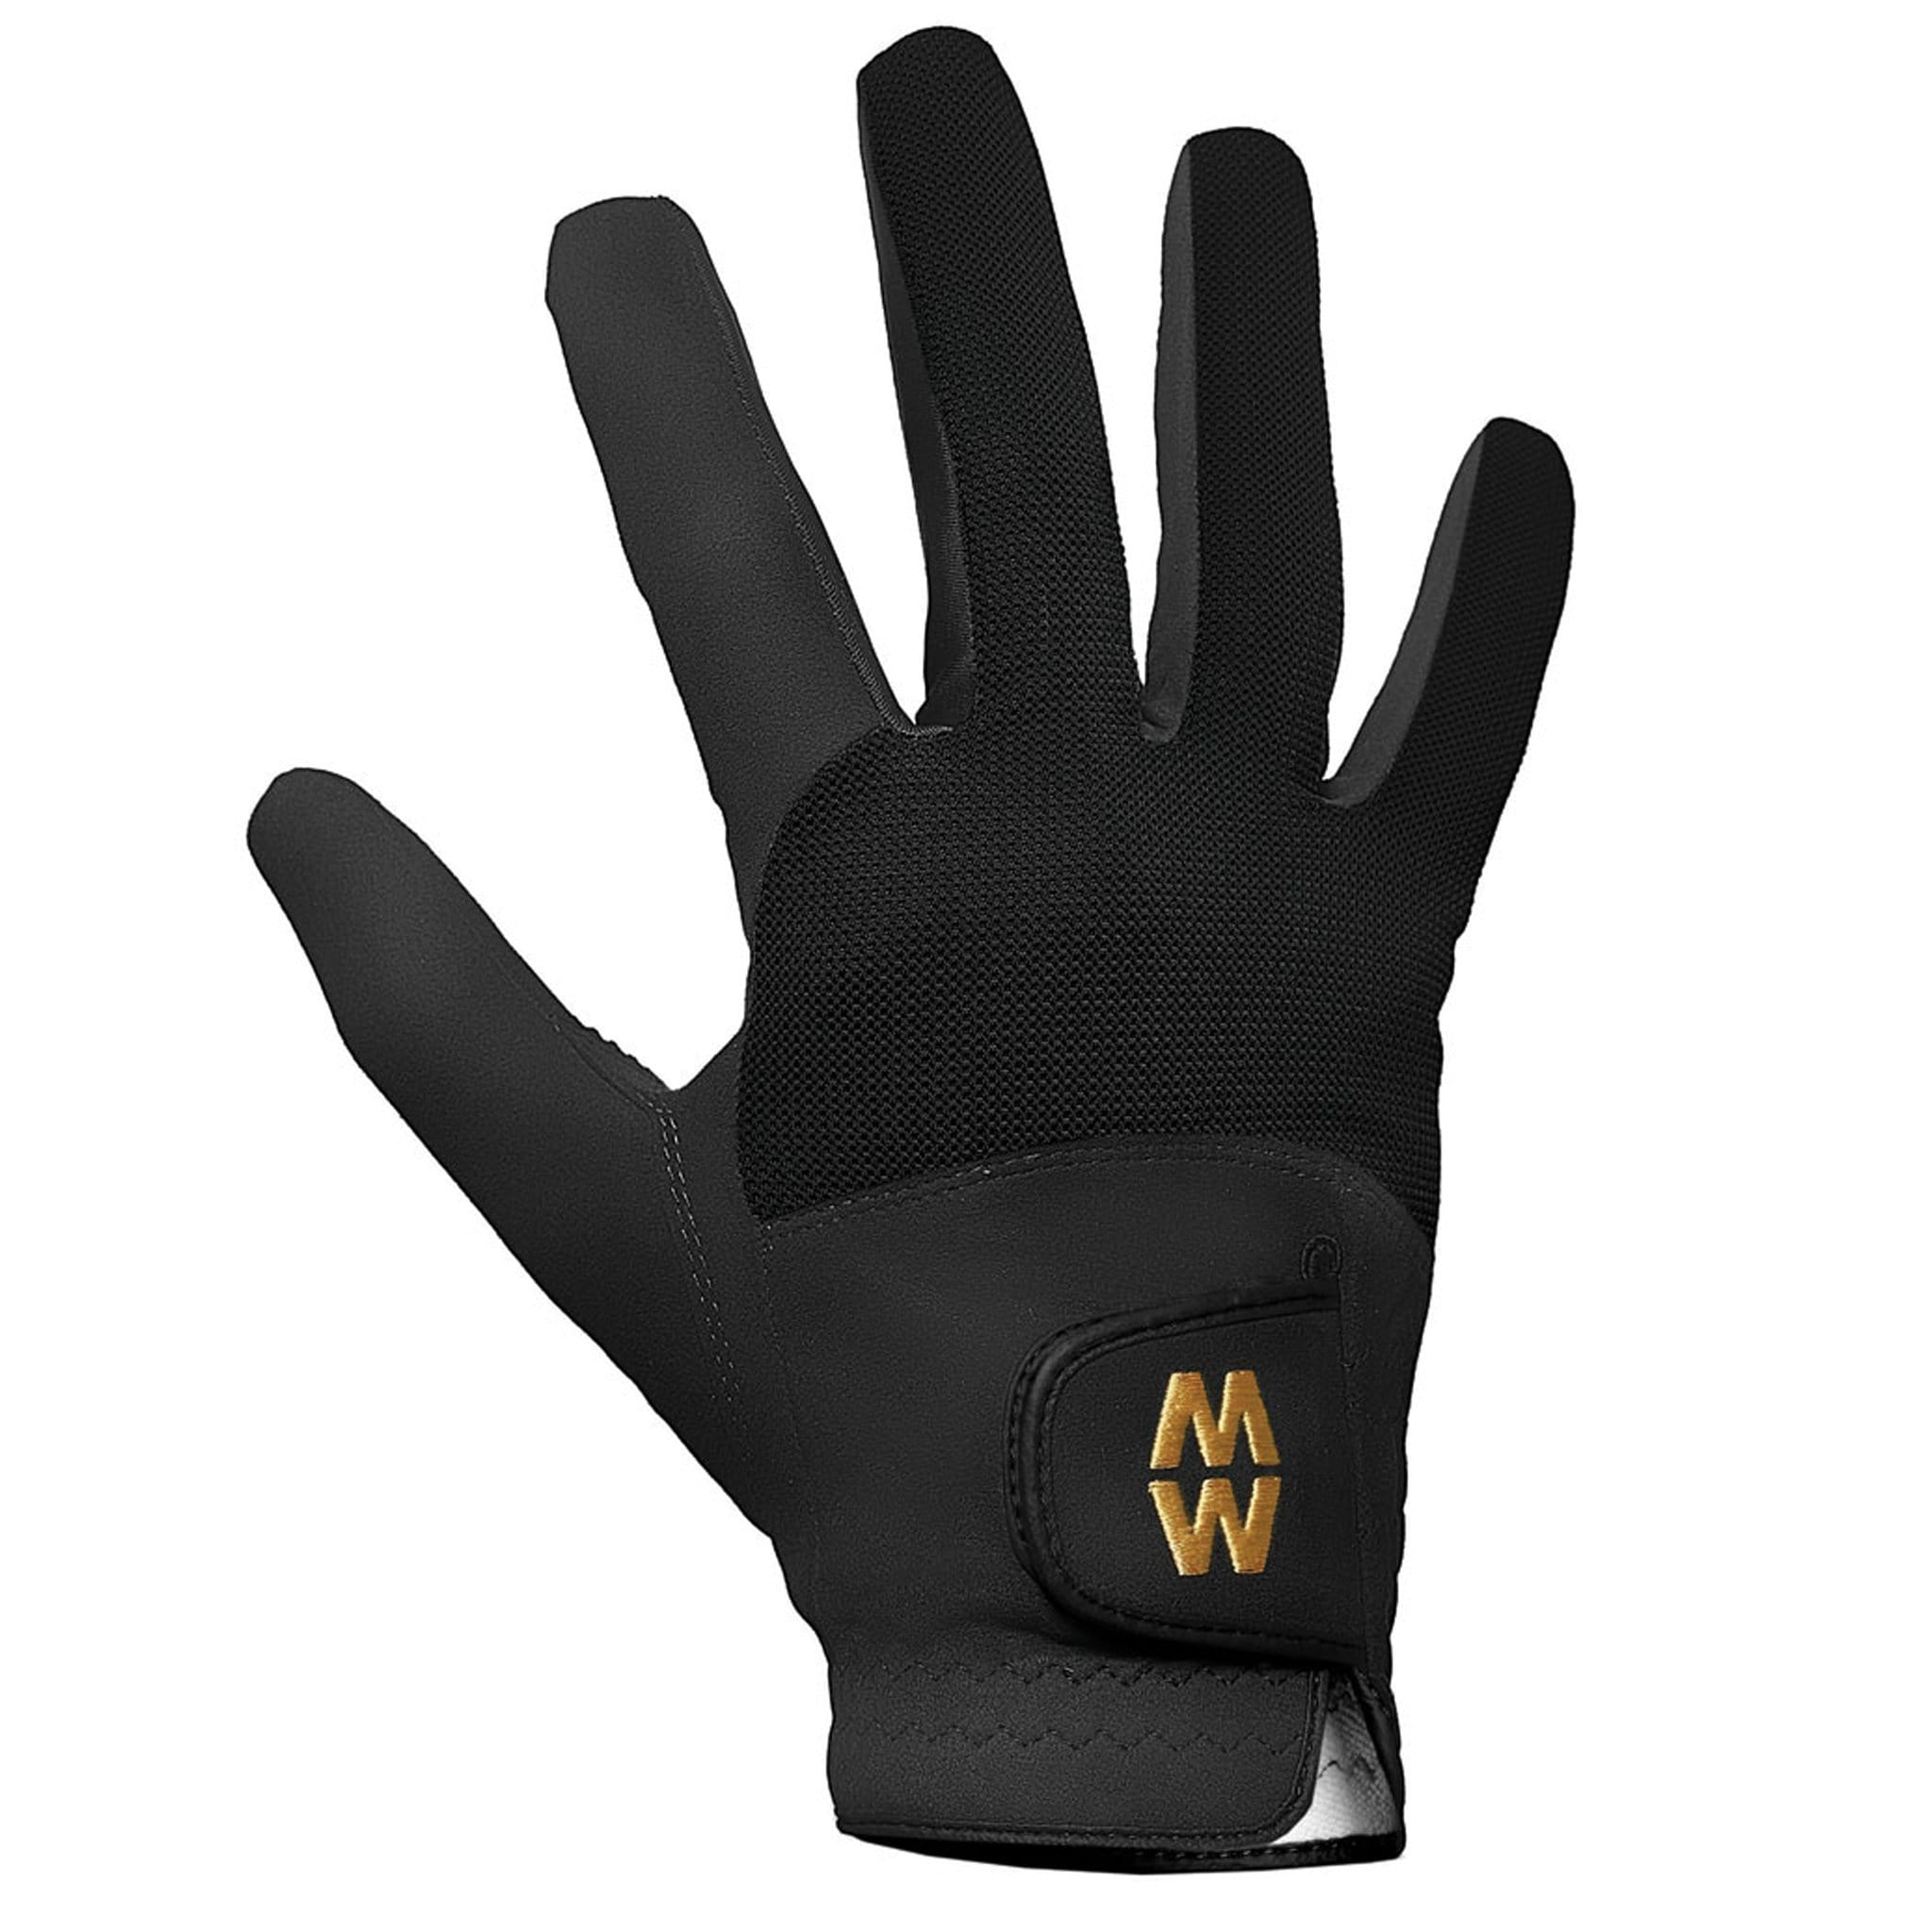 MacWet Mesh Short Cuff Gloves Black 2339.